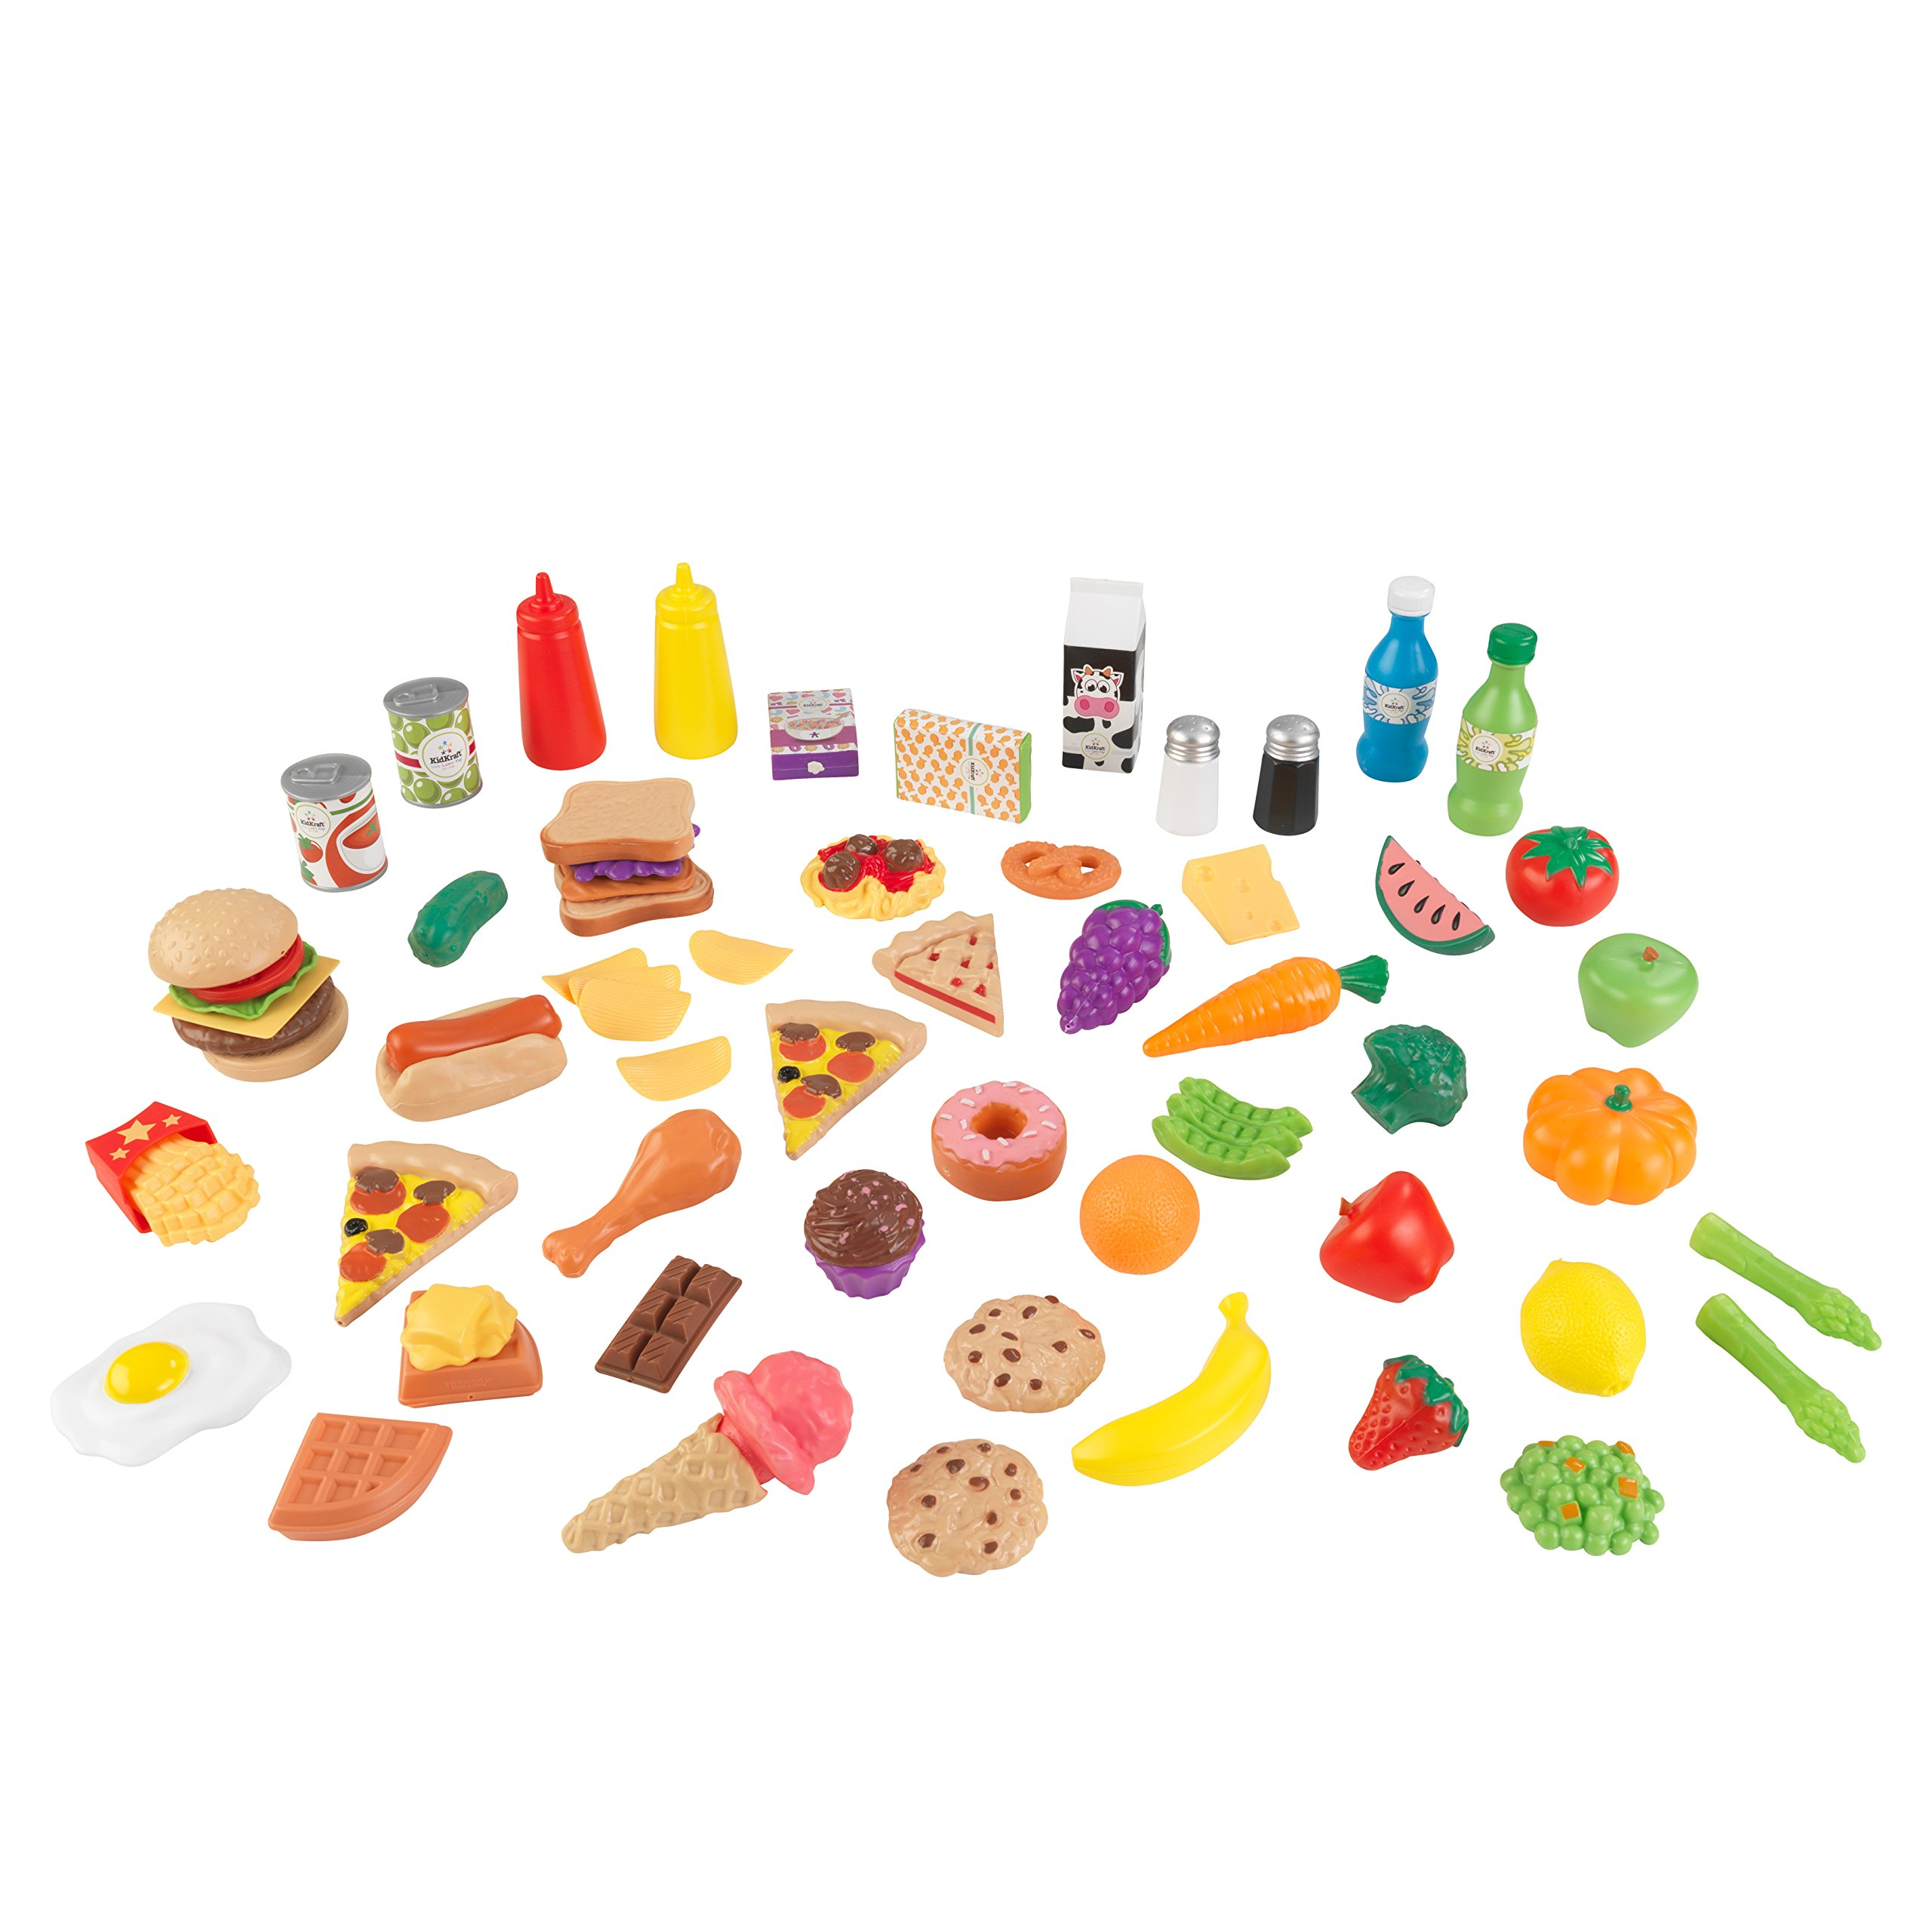 KidKraft 65Pc Pretend Play Food Set Playset by KidKraft